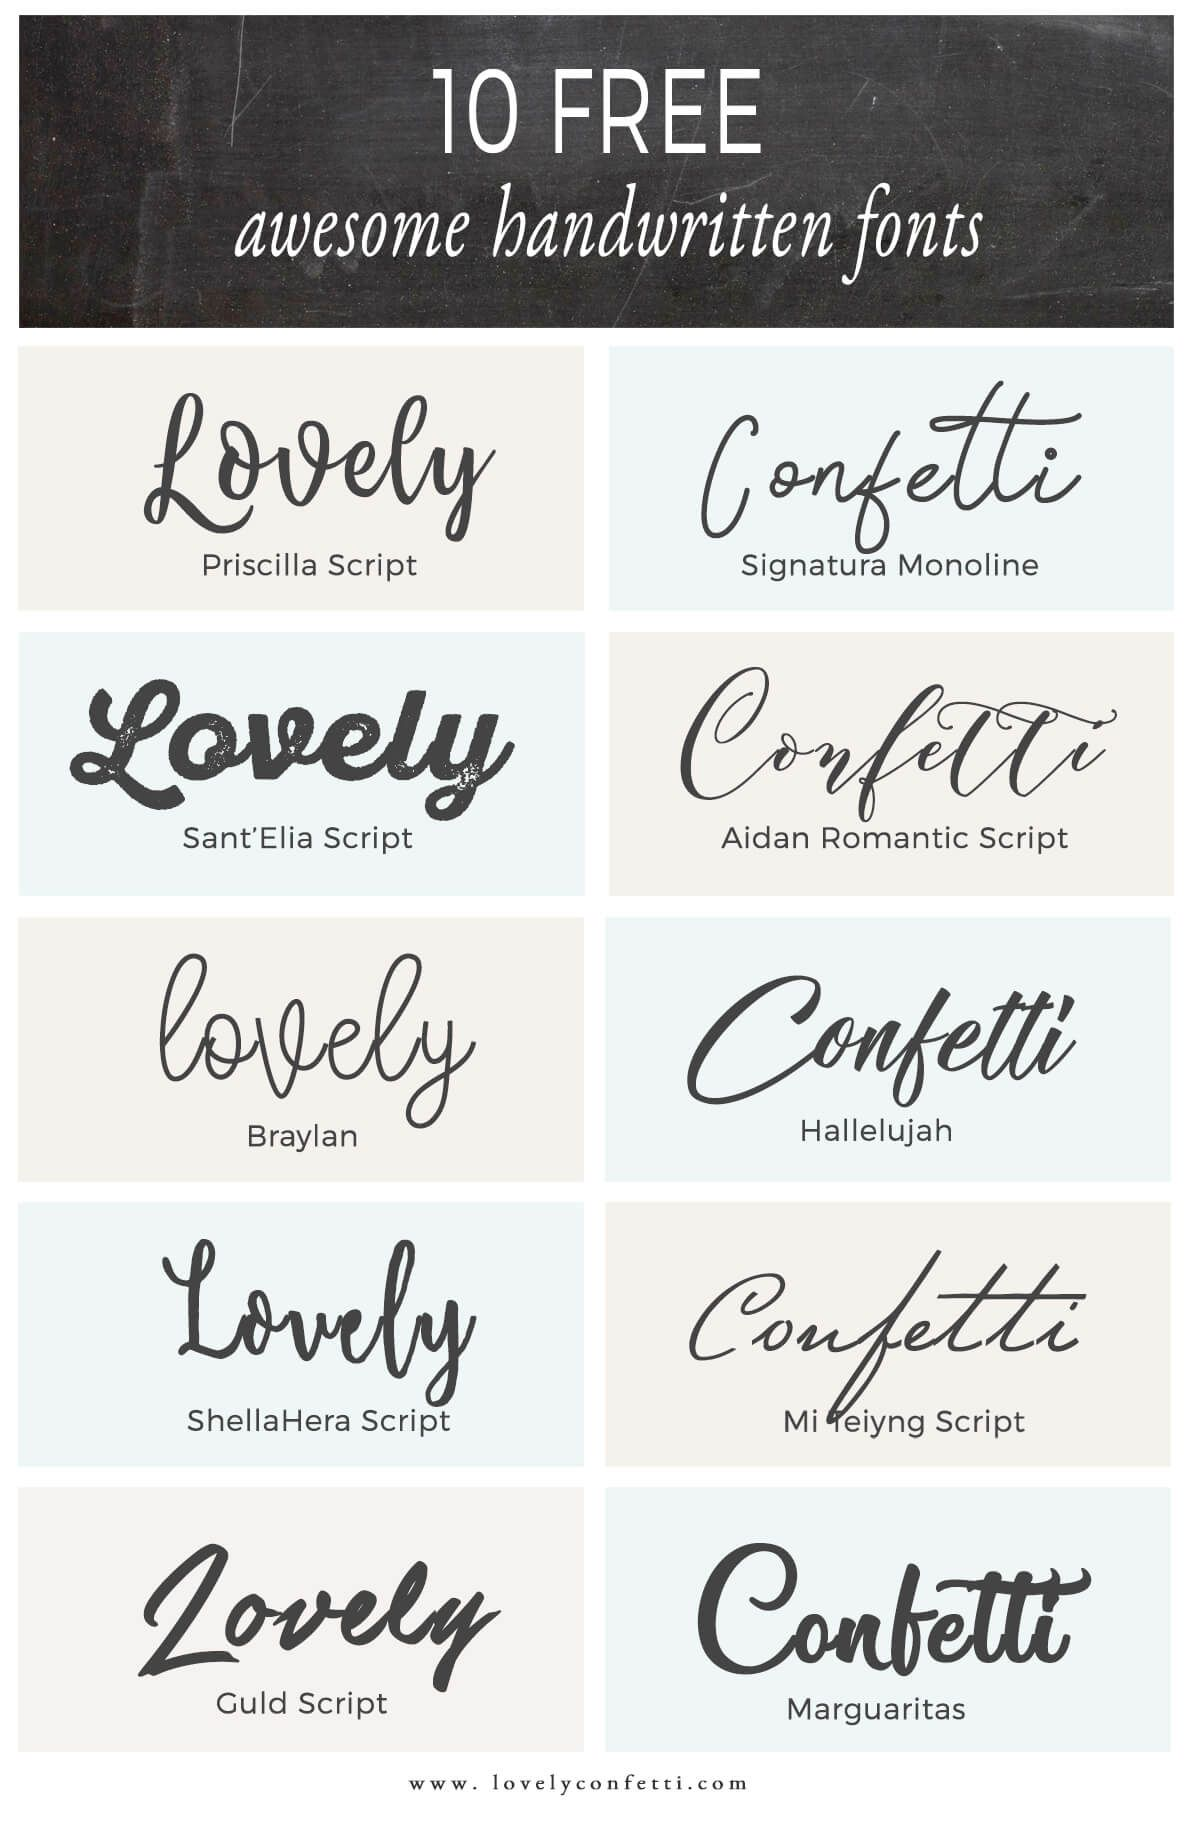 10 free awesome handwritten fonts Handwritten fonts